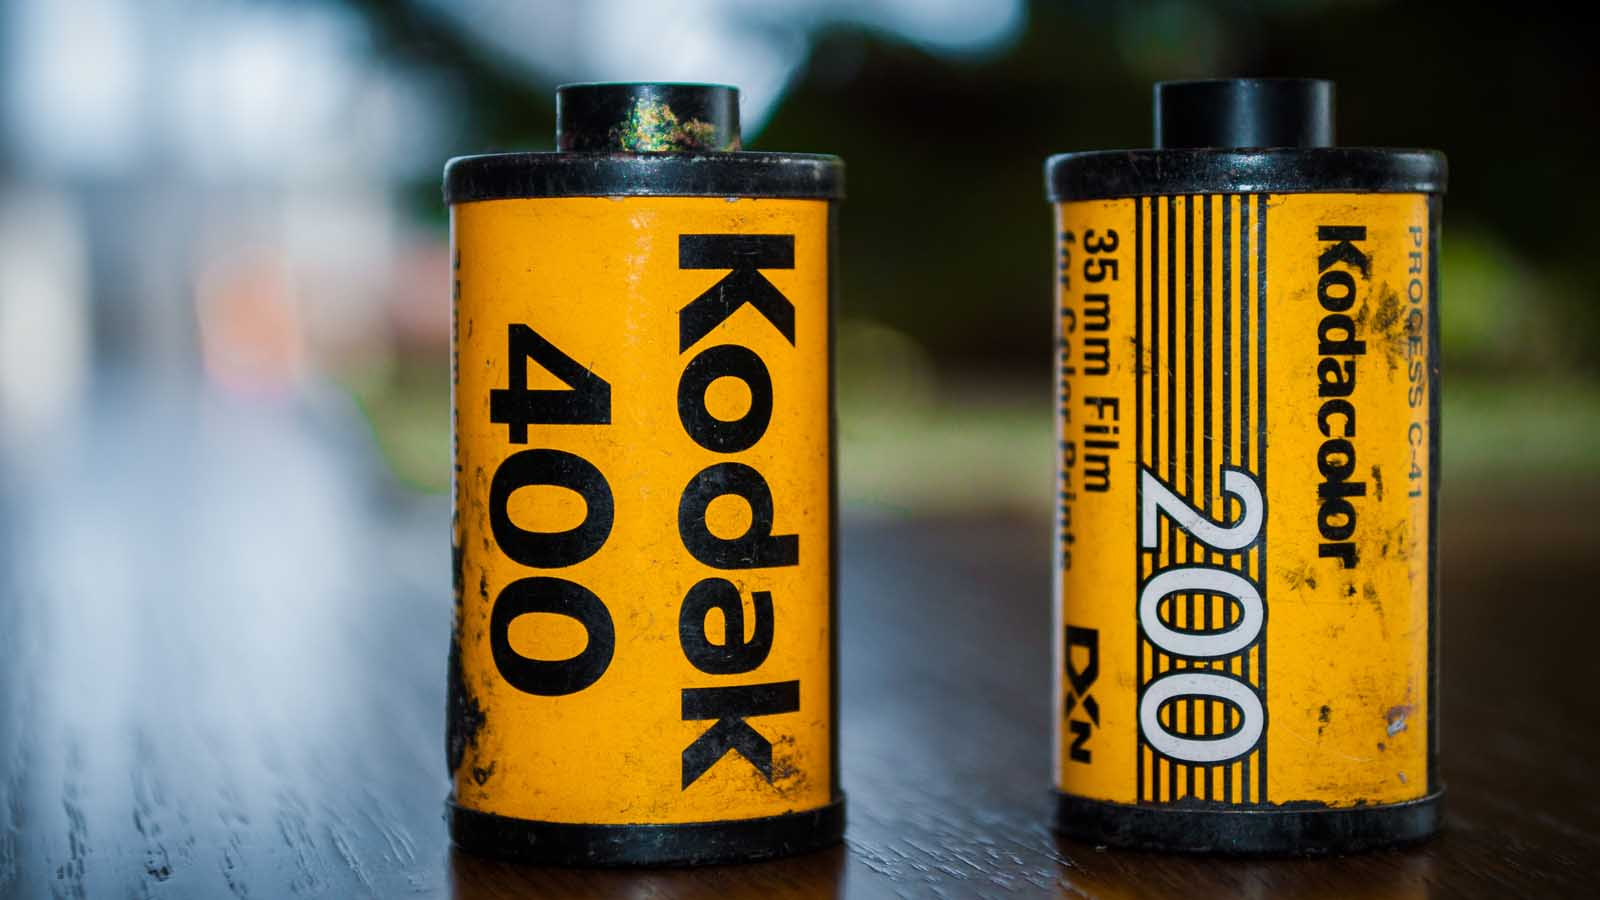 Eastman Kodak News Why Kodk Stock Is Rocketing 228 Higher Today Investorplace